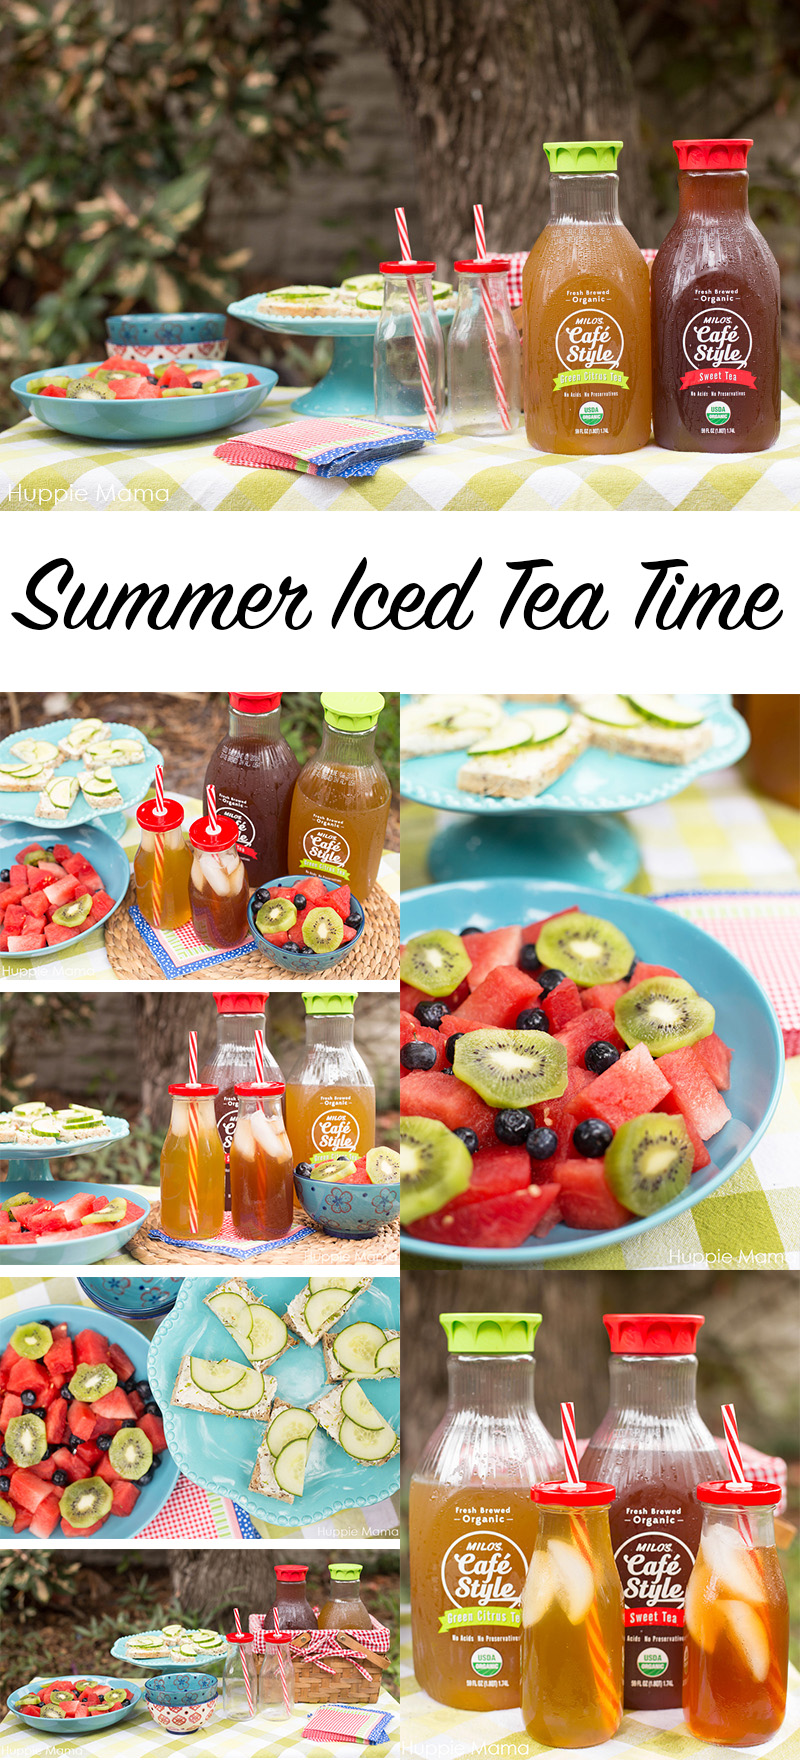 Summer Iced Tea Time